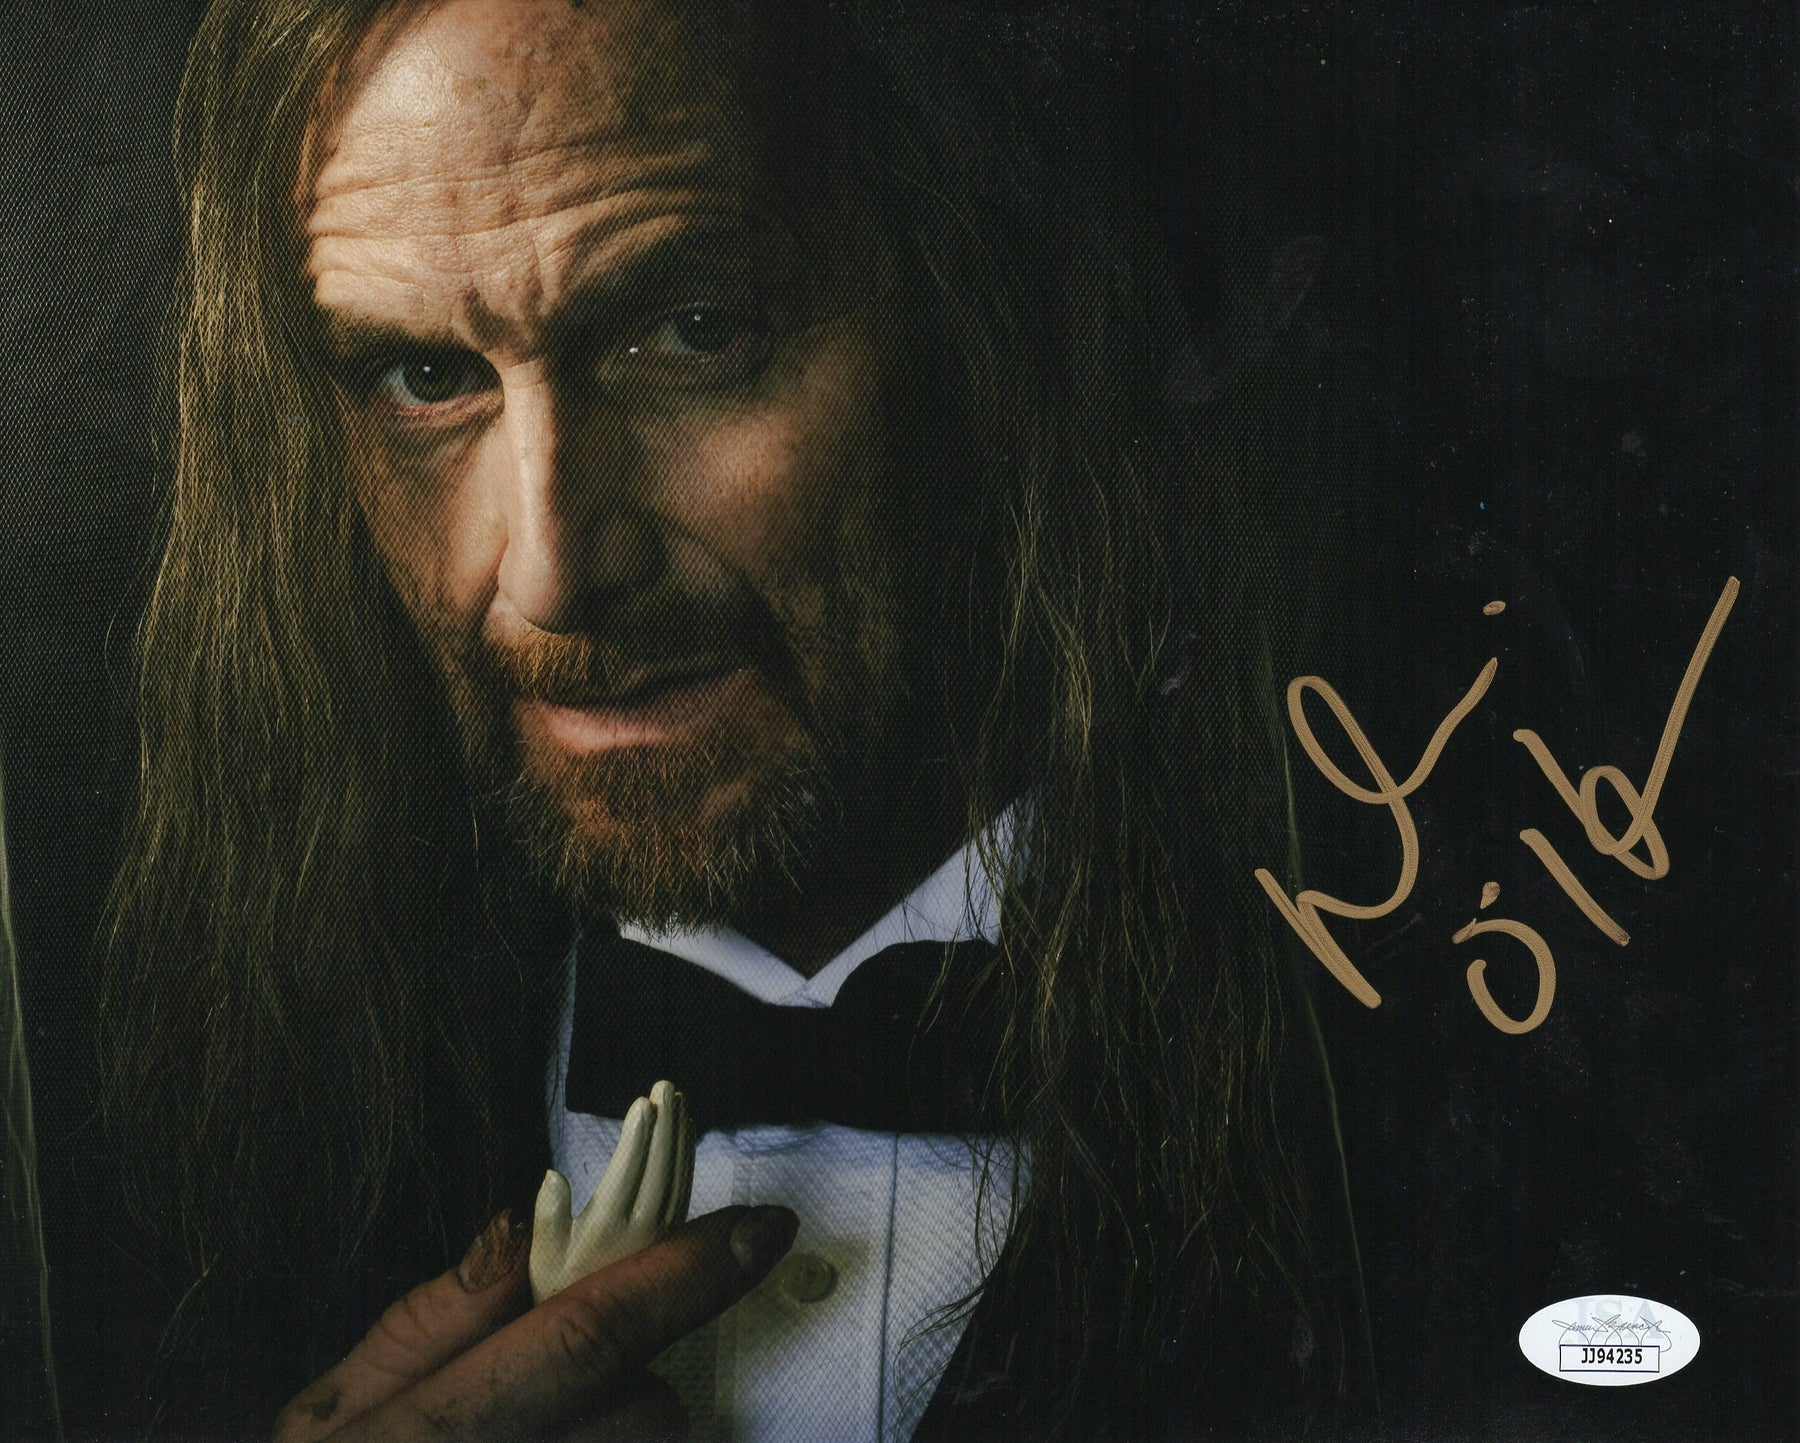 Denis O'Hare Autograph 8x10 Photo American Horror Story Signed JSA COA 3